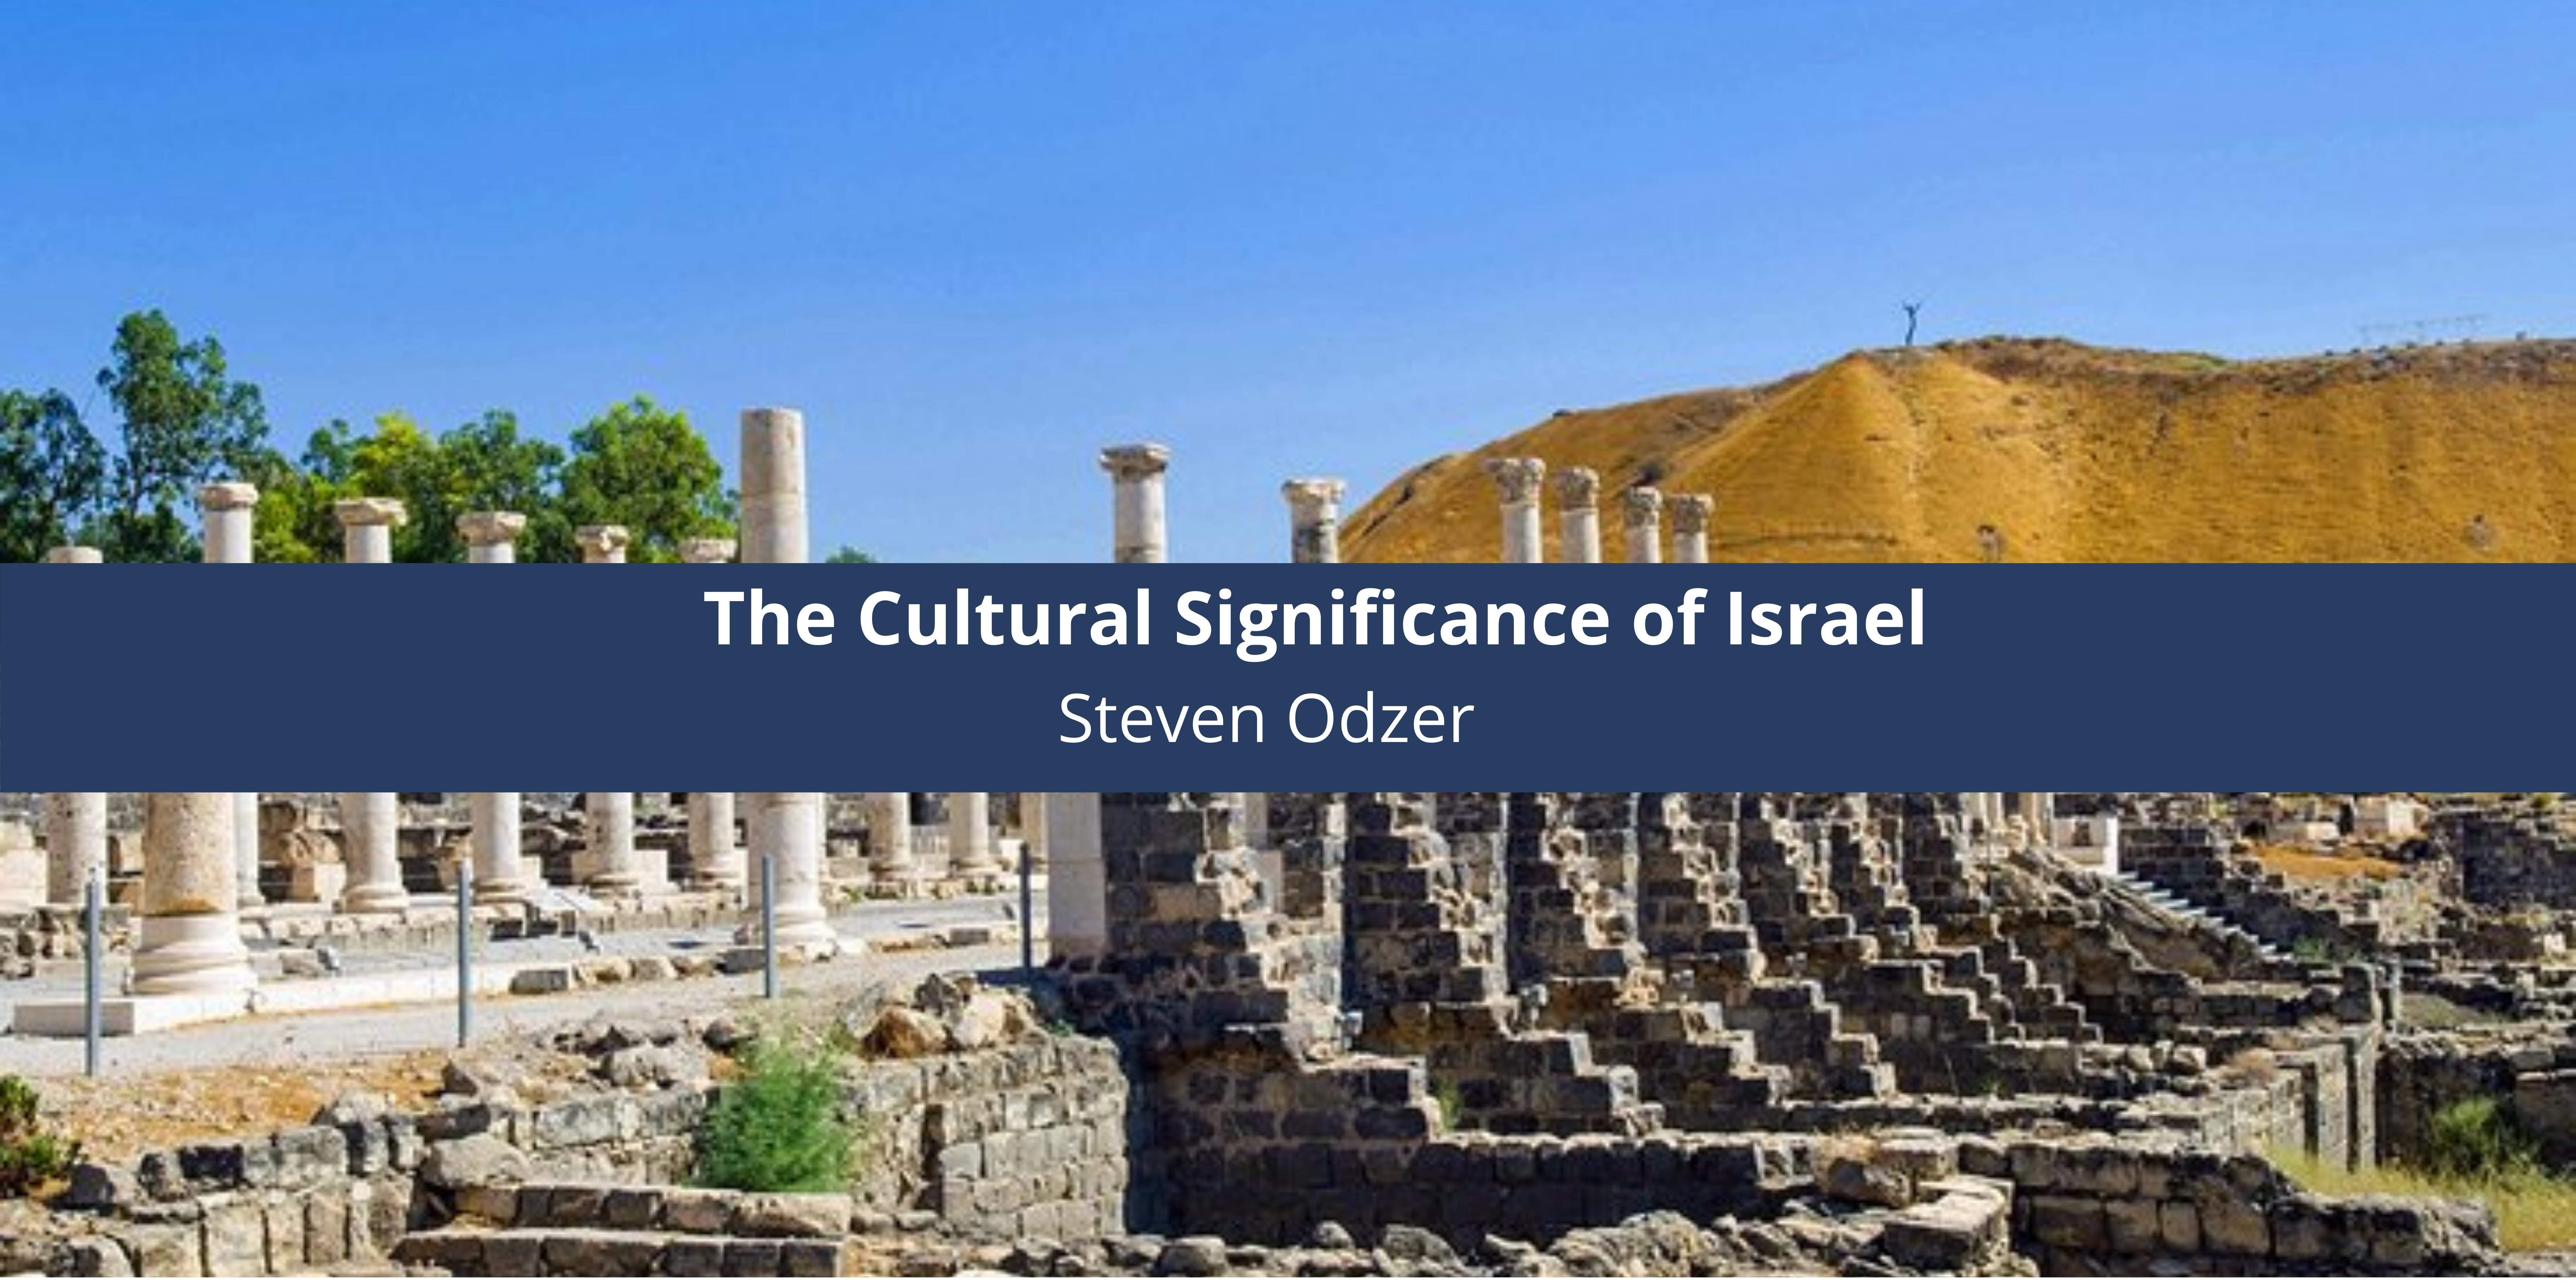 The Cultural Significance of Israel